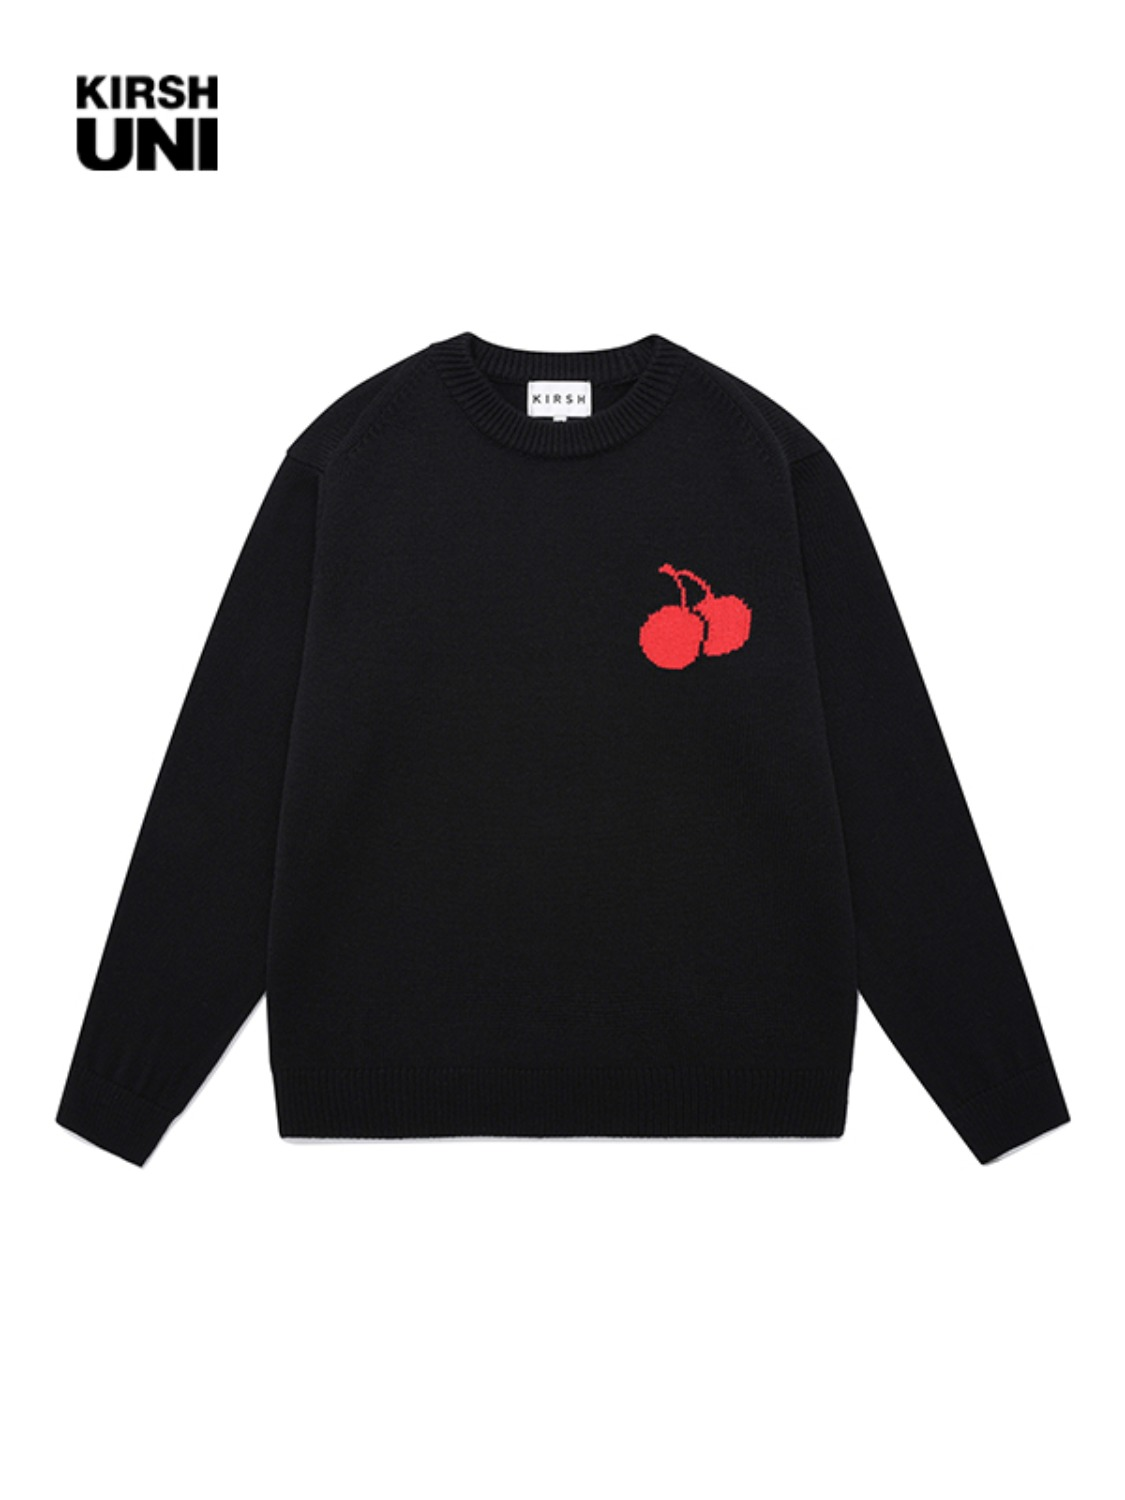 UNI MIDDLE CHERRY KNIT KS [BLACK]